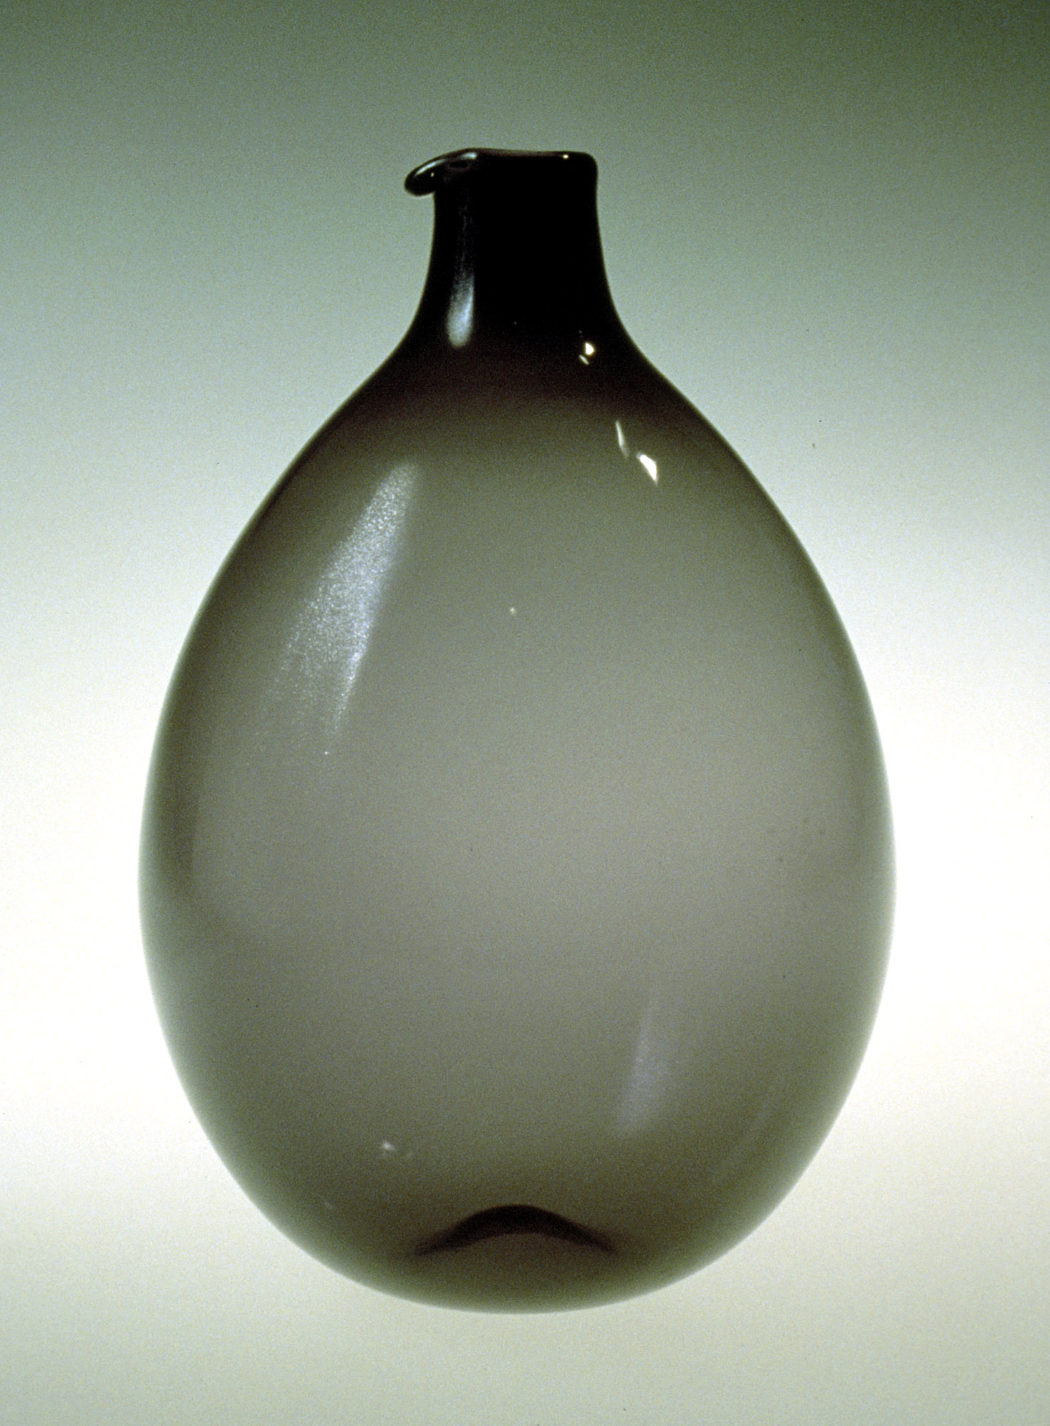 Bulb-shaped decanter in transparent grey glass.